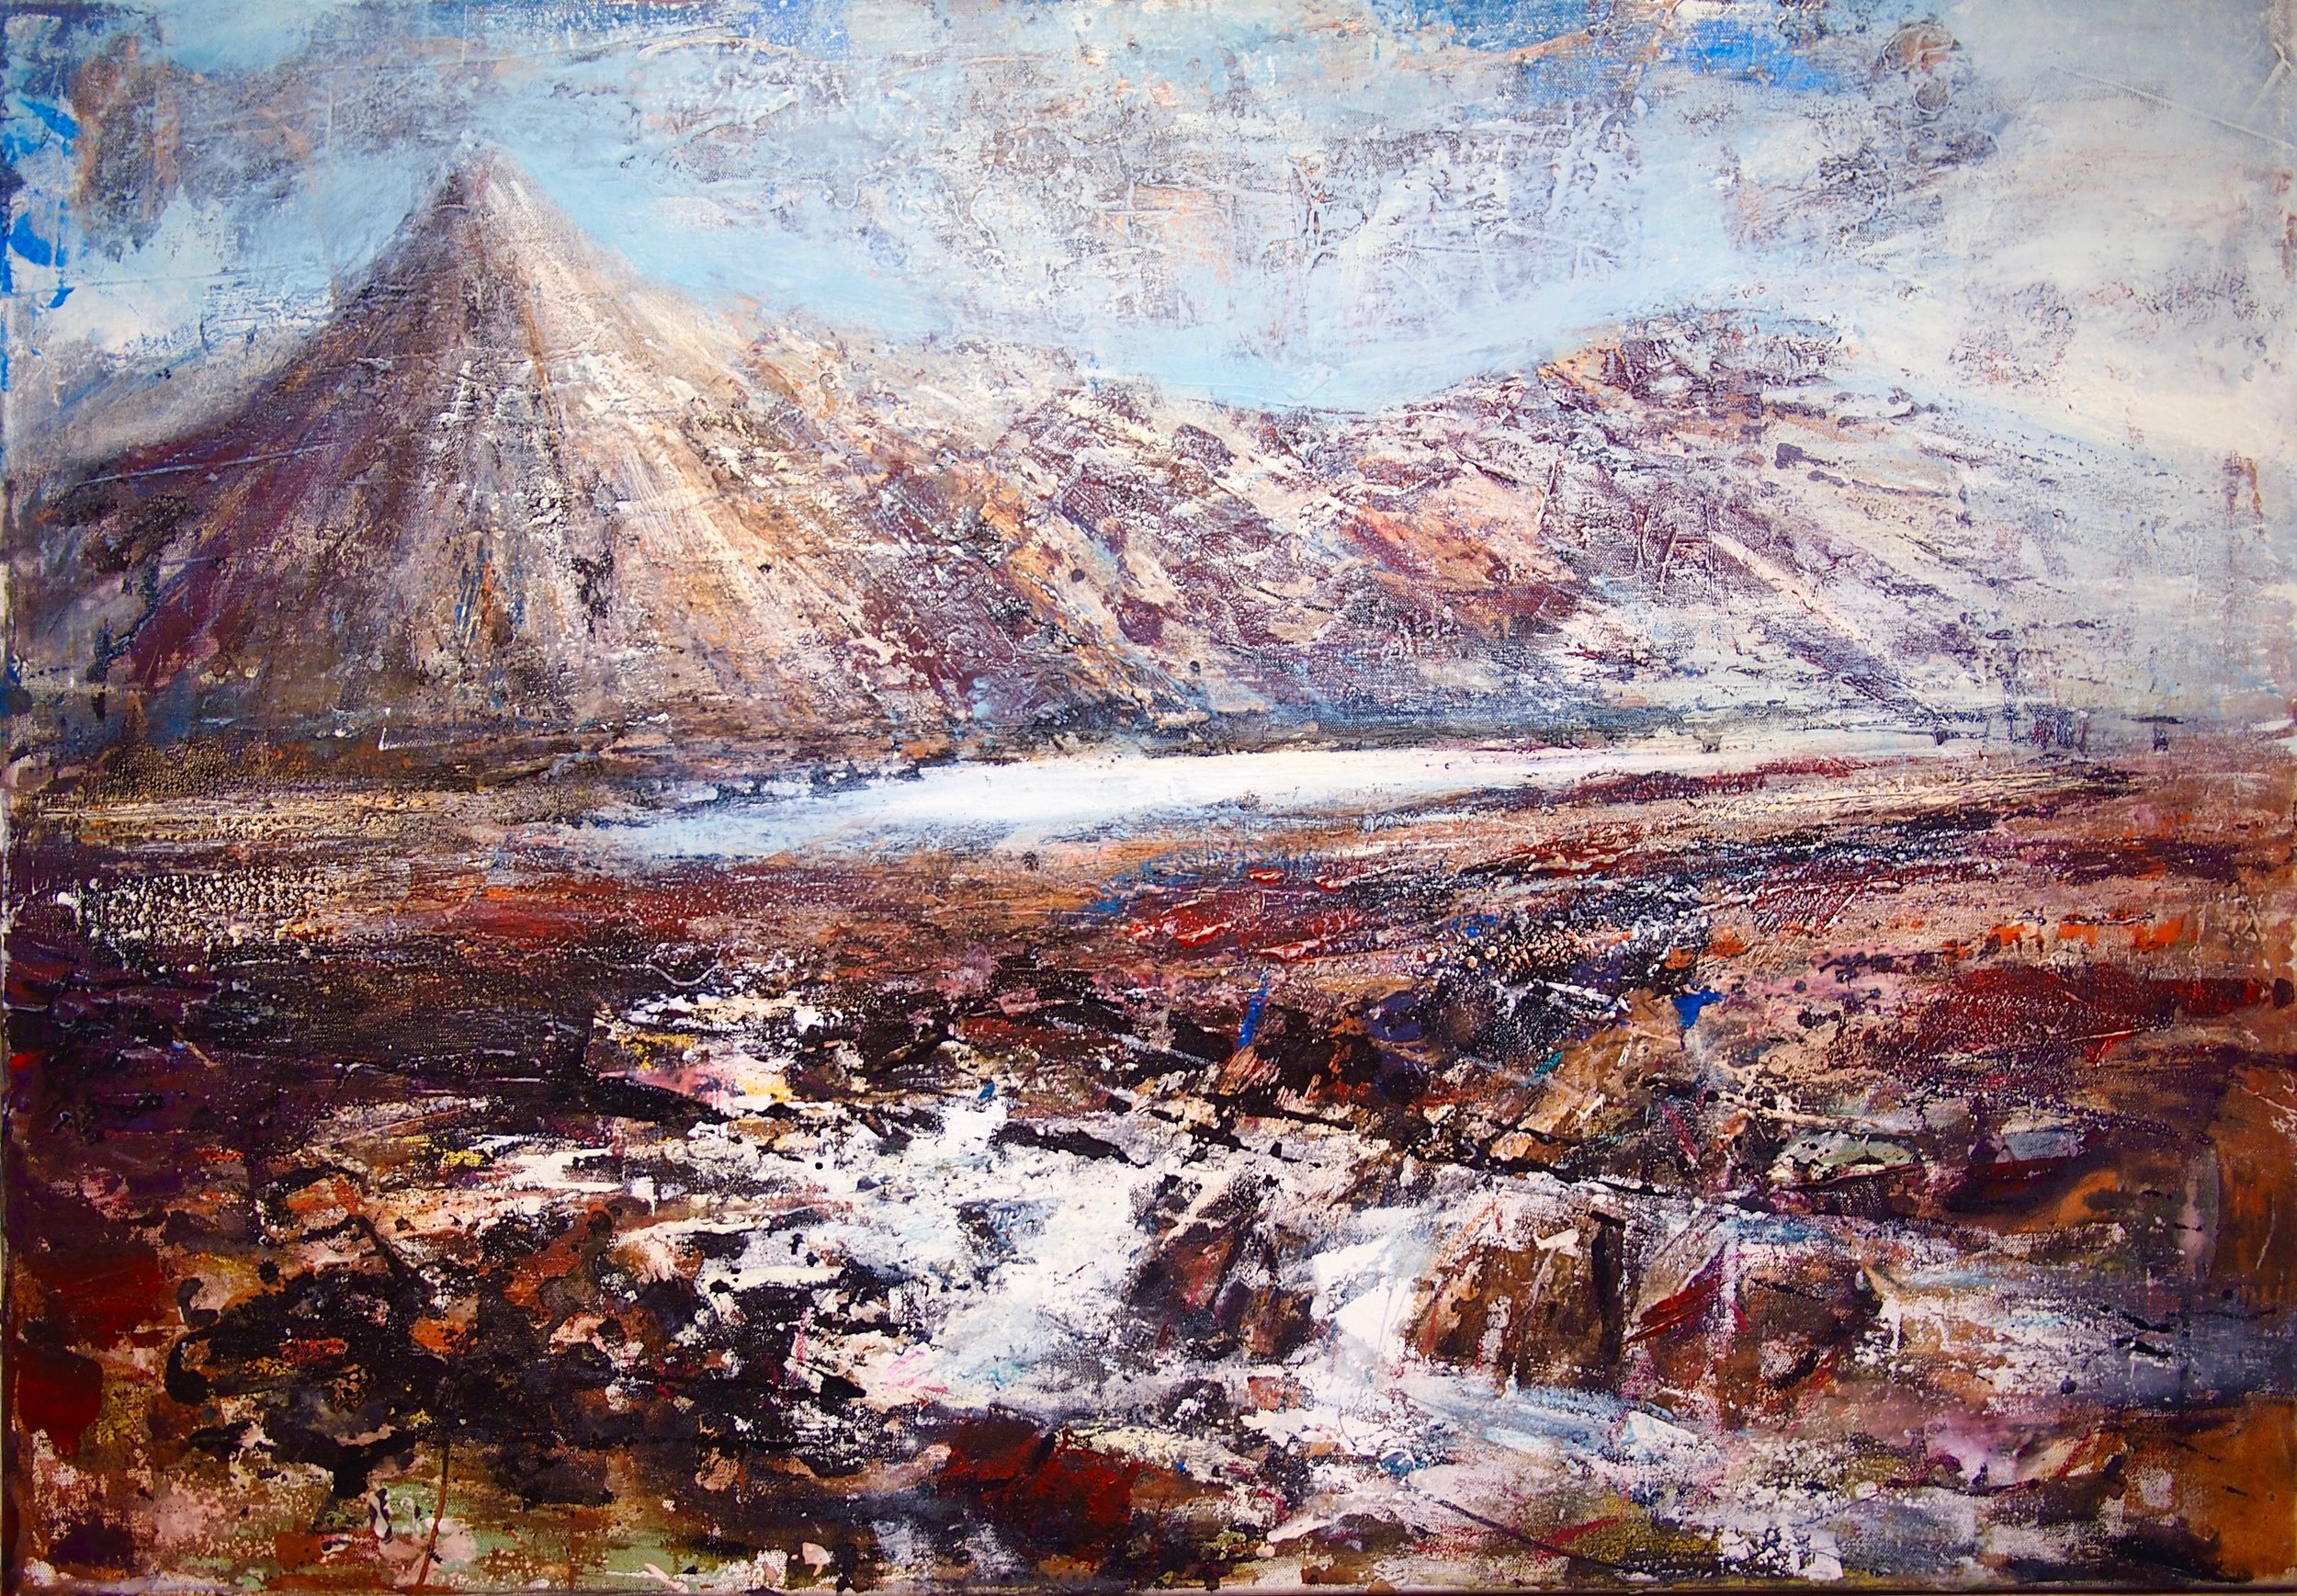 Copy of Tryfan, Snowdonia - 100 x 70 cm